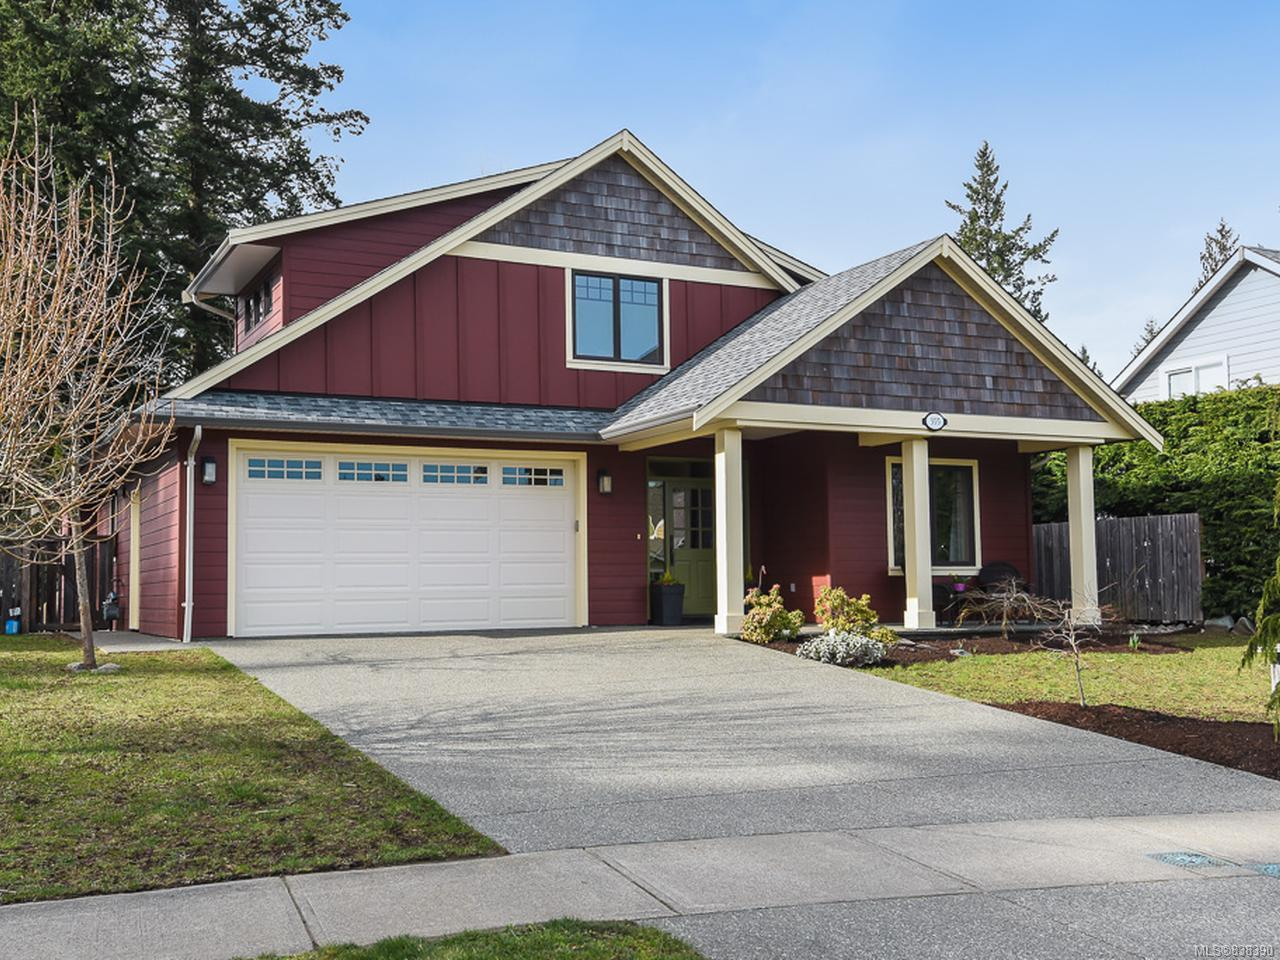 FEATURED LISTING: 355 Gardener Way COMOX